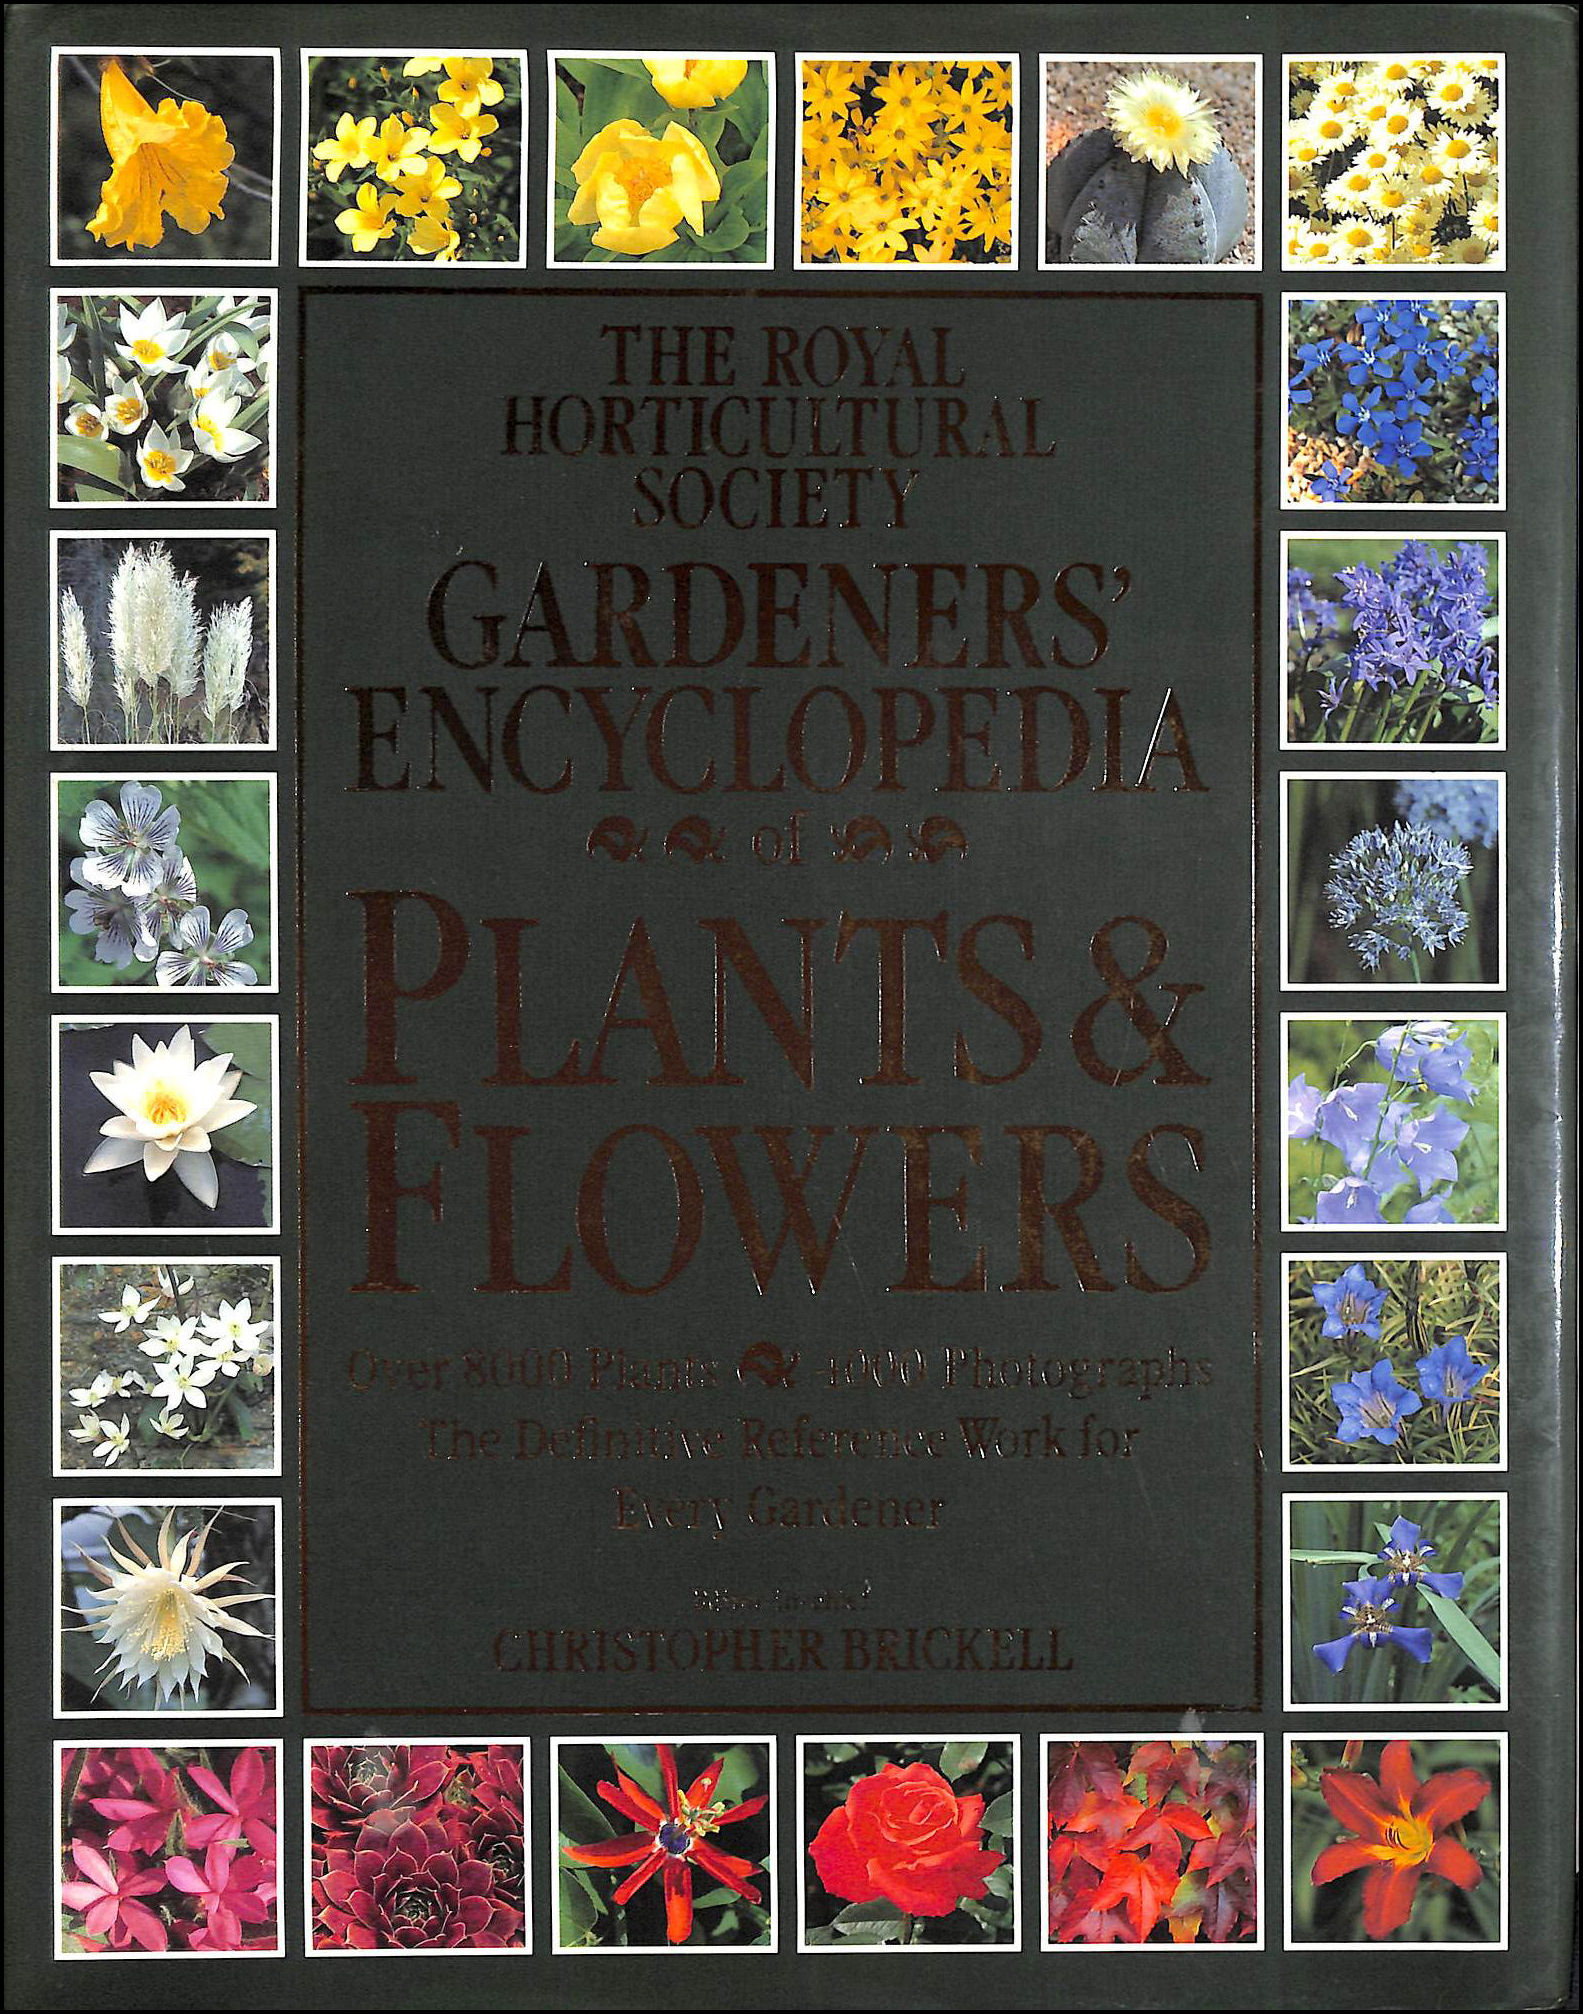 Royal Horticultural Society Gardeners' Encyclopedia of Plants and Flowers, Brickell, Christopher (editor-in-chief)